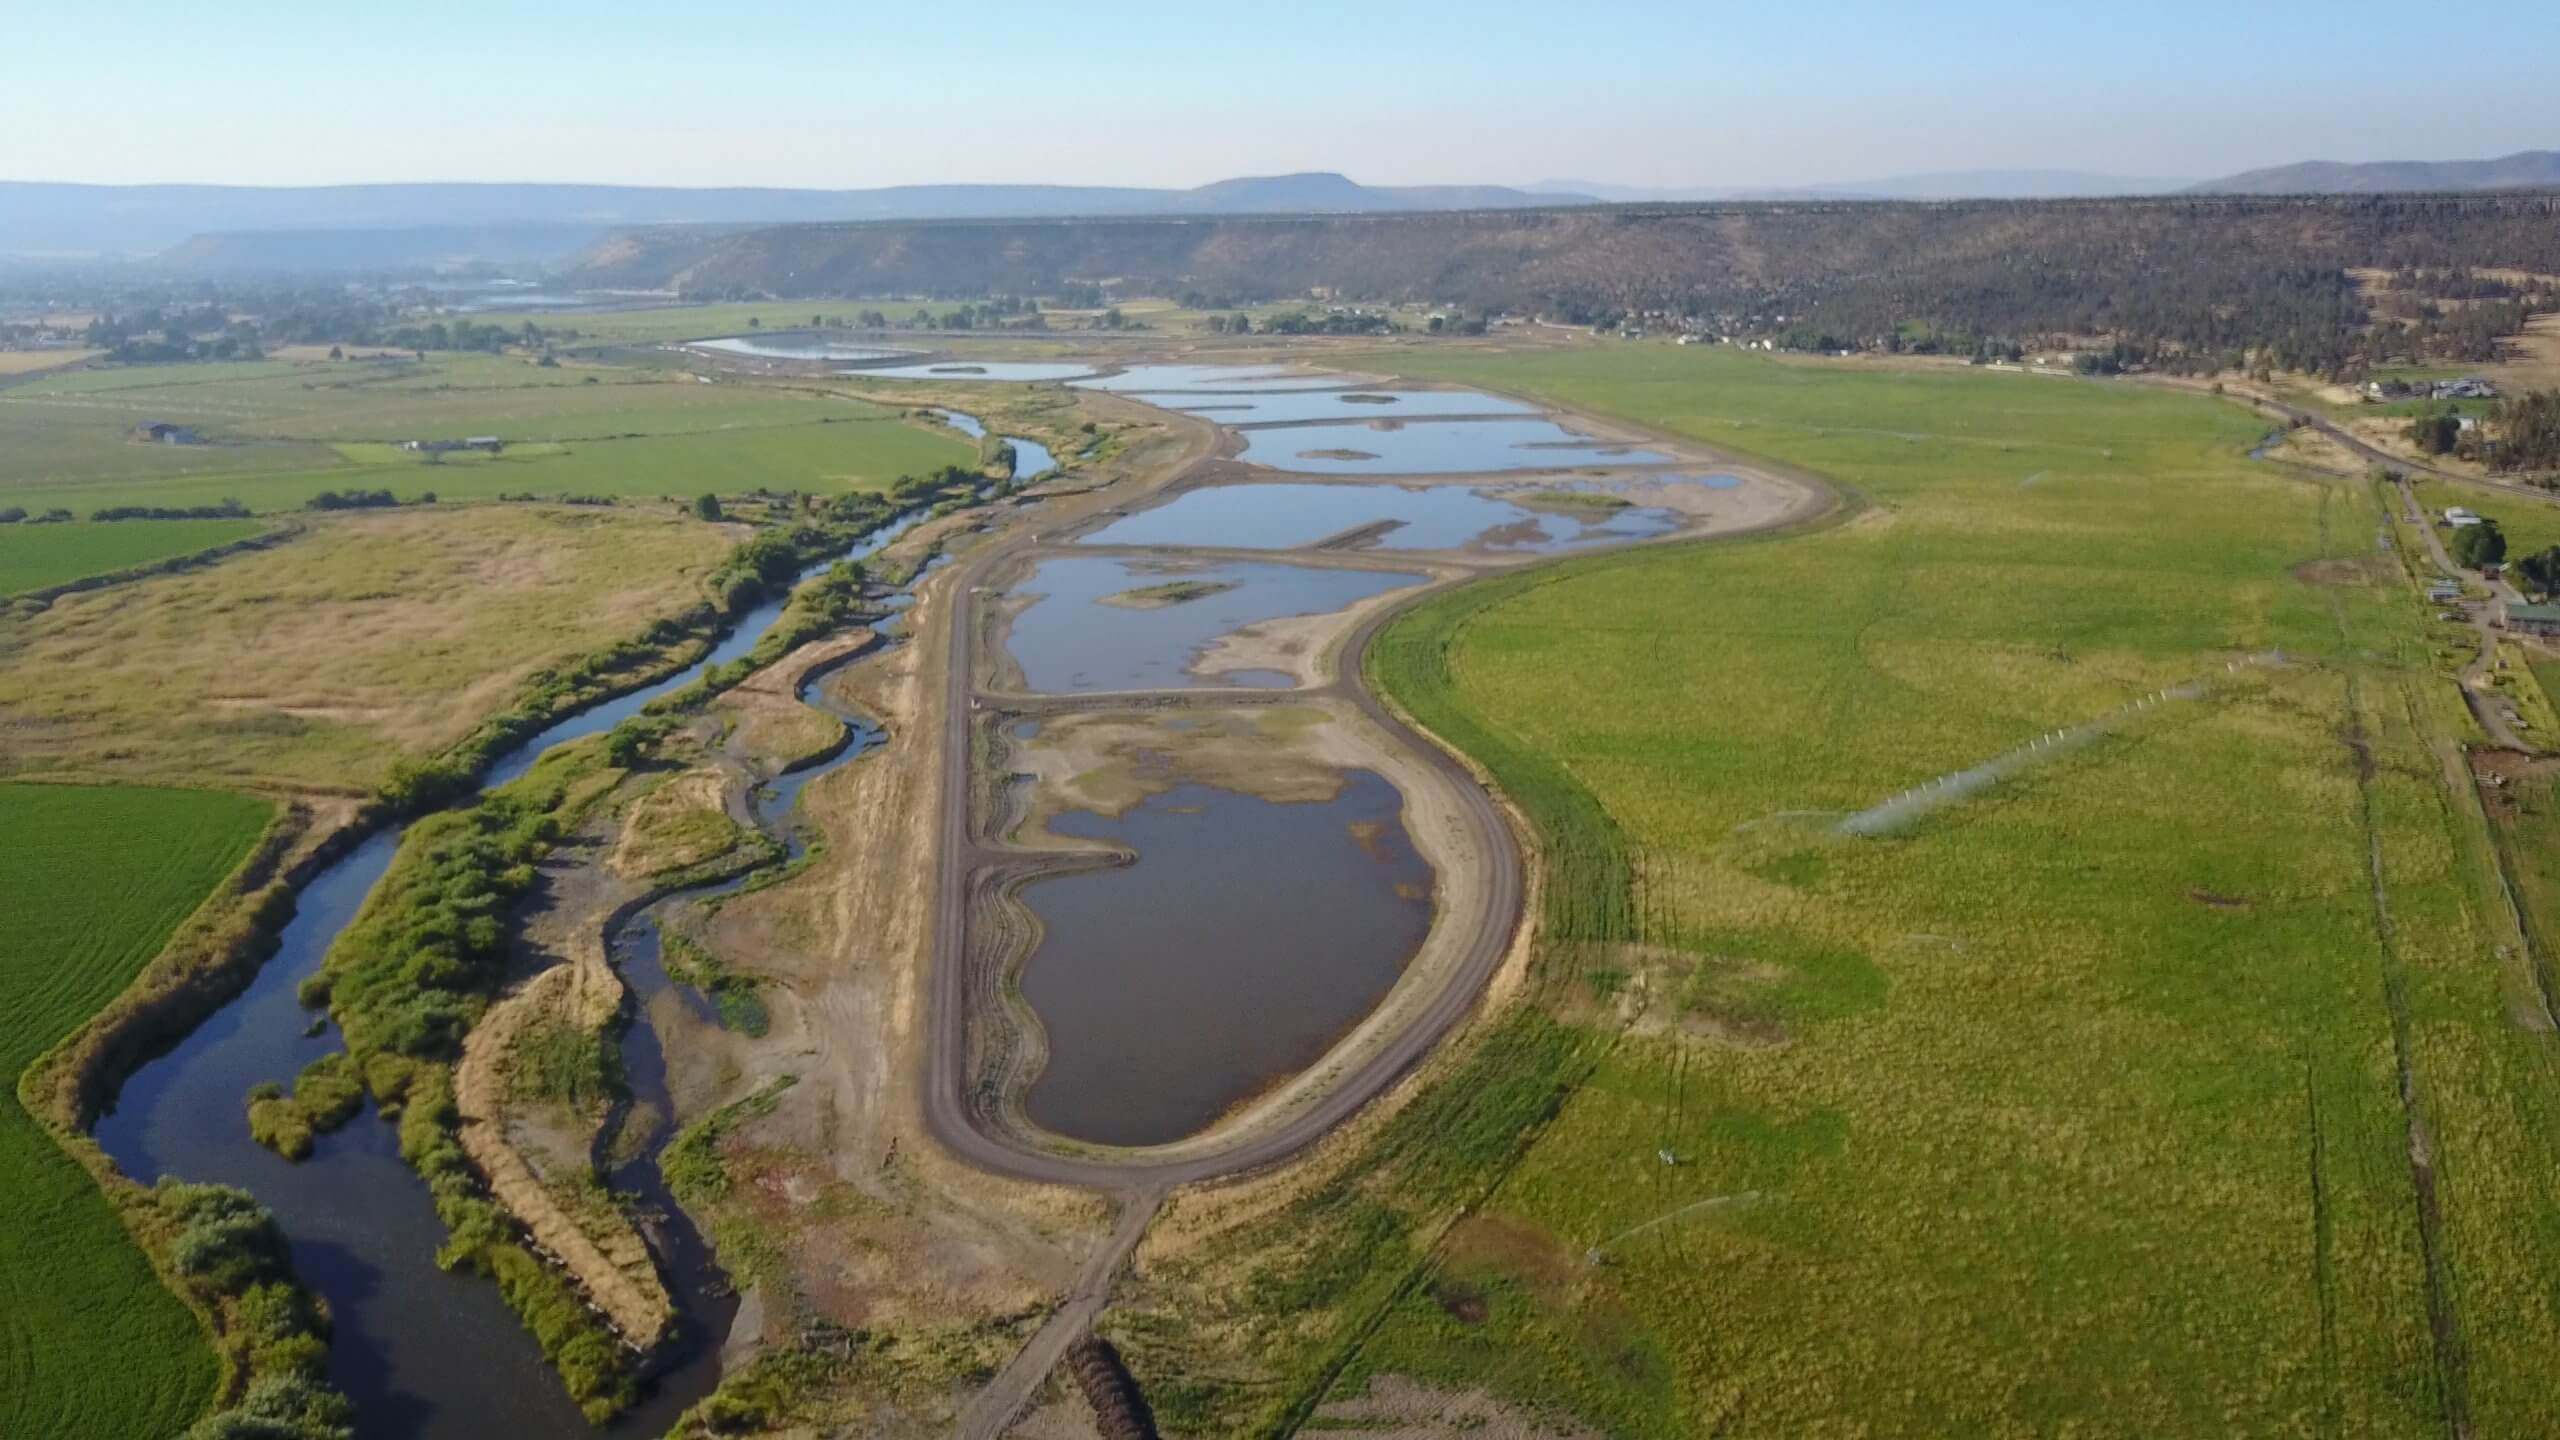 Prineville wetlands project - built ponds of water spread out on the landscape next to the natural path of a river.